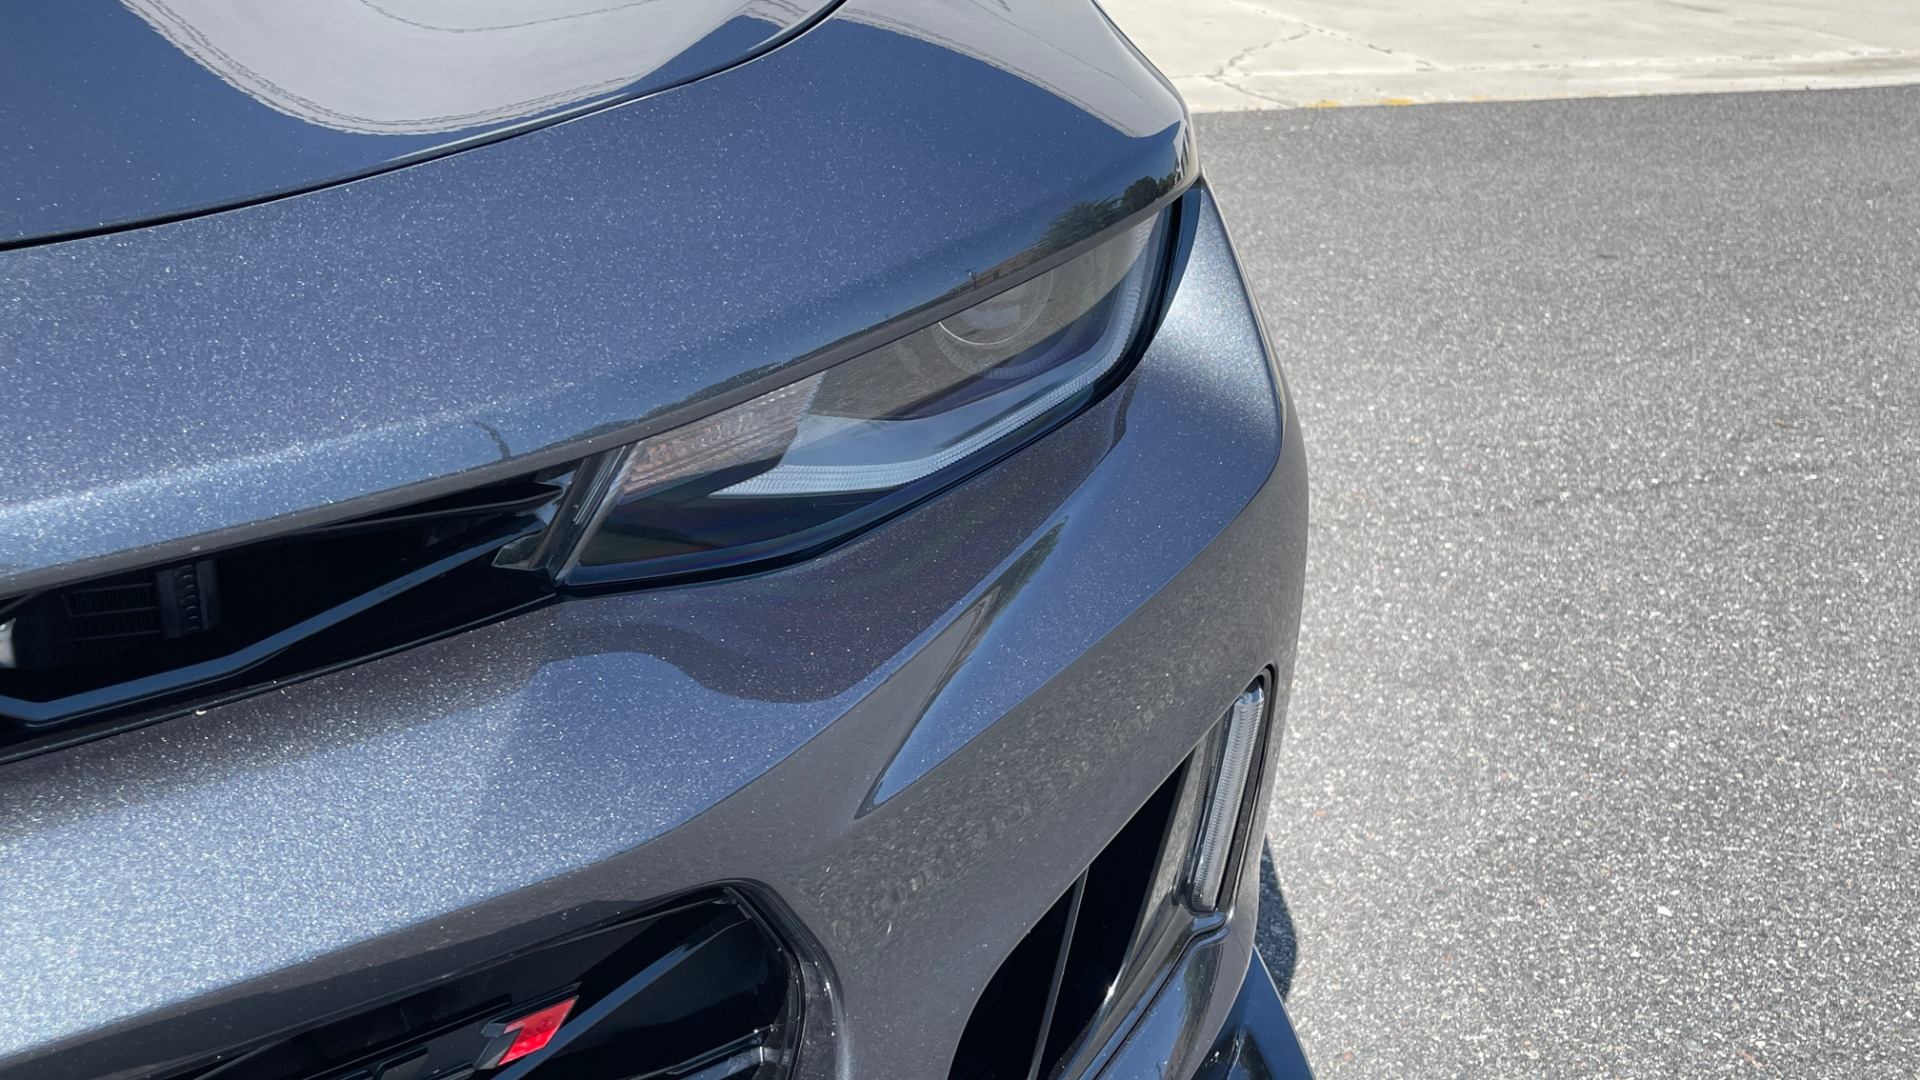 Used 2018 Chevrolet CAMARO ZL1 SUPERCHARGED COUPE 850HP / 10-SPD AUTO / NAV / BOSE / REARVIEW for sale $59,995 at Formula Imports in Charlotte NC 28227 19